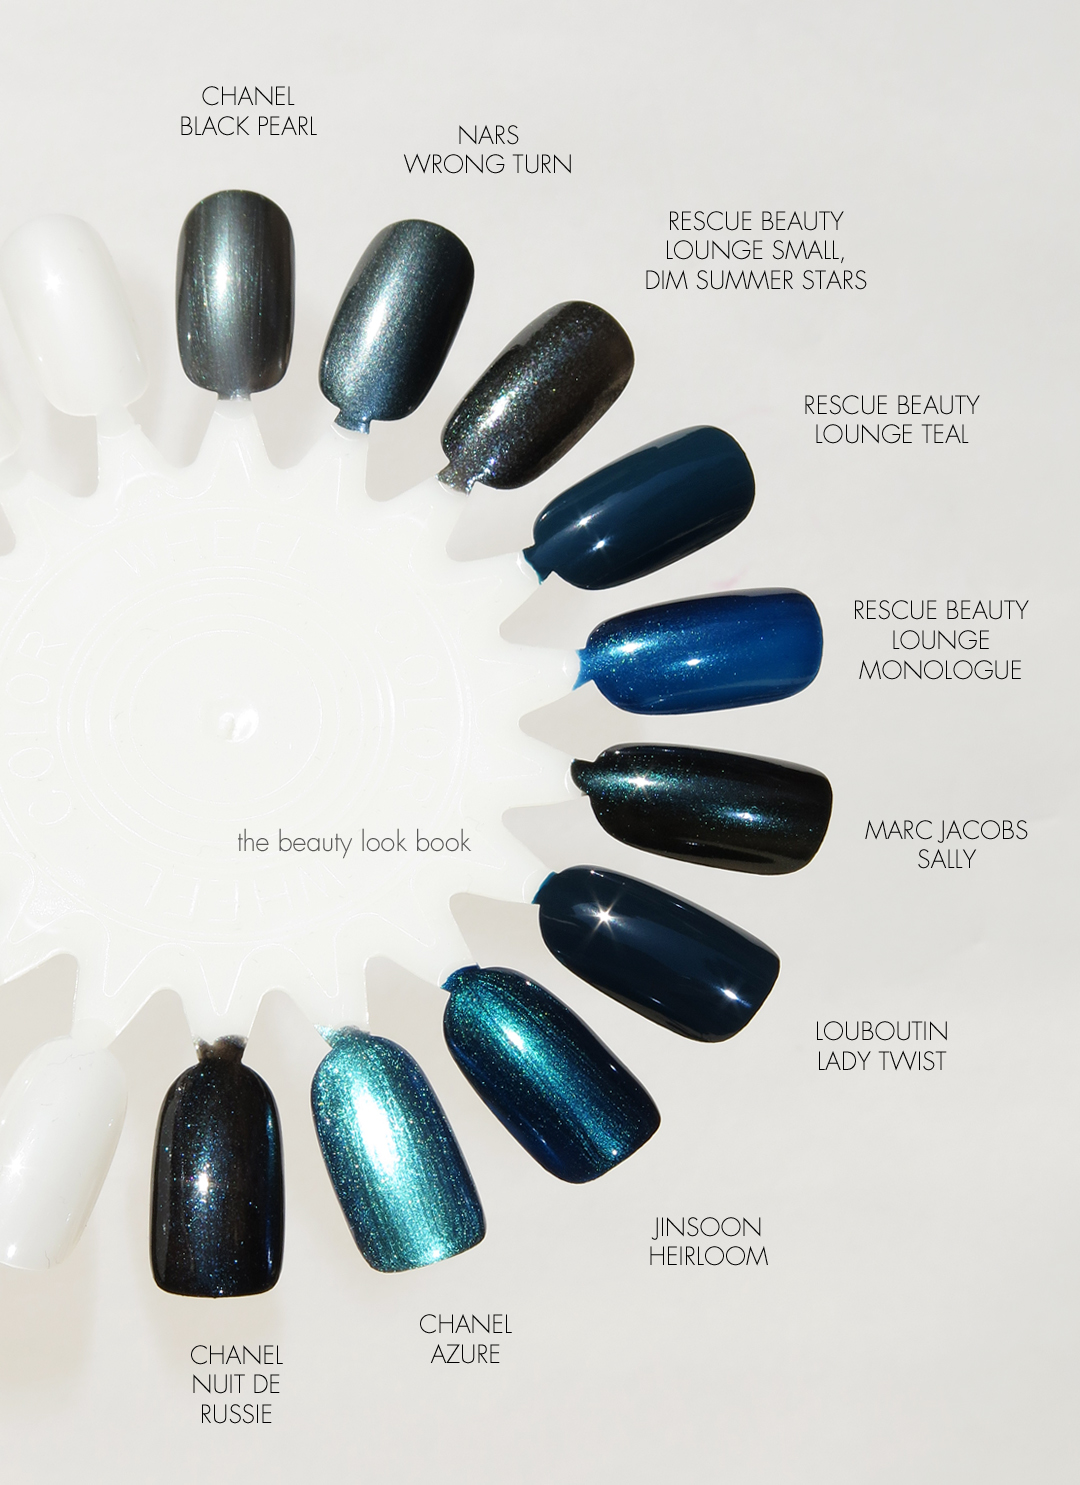 Nail Polish Archives | Page 9 of 53 | The Beauty Look Book